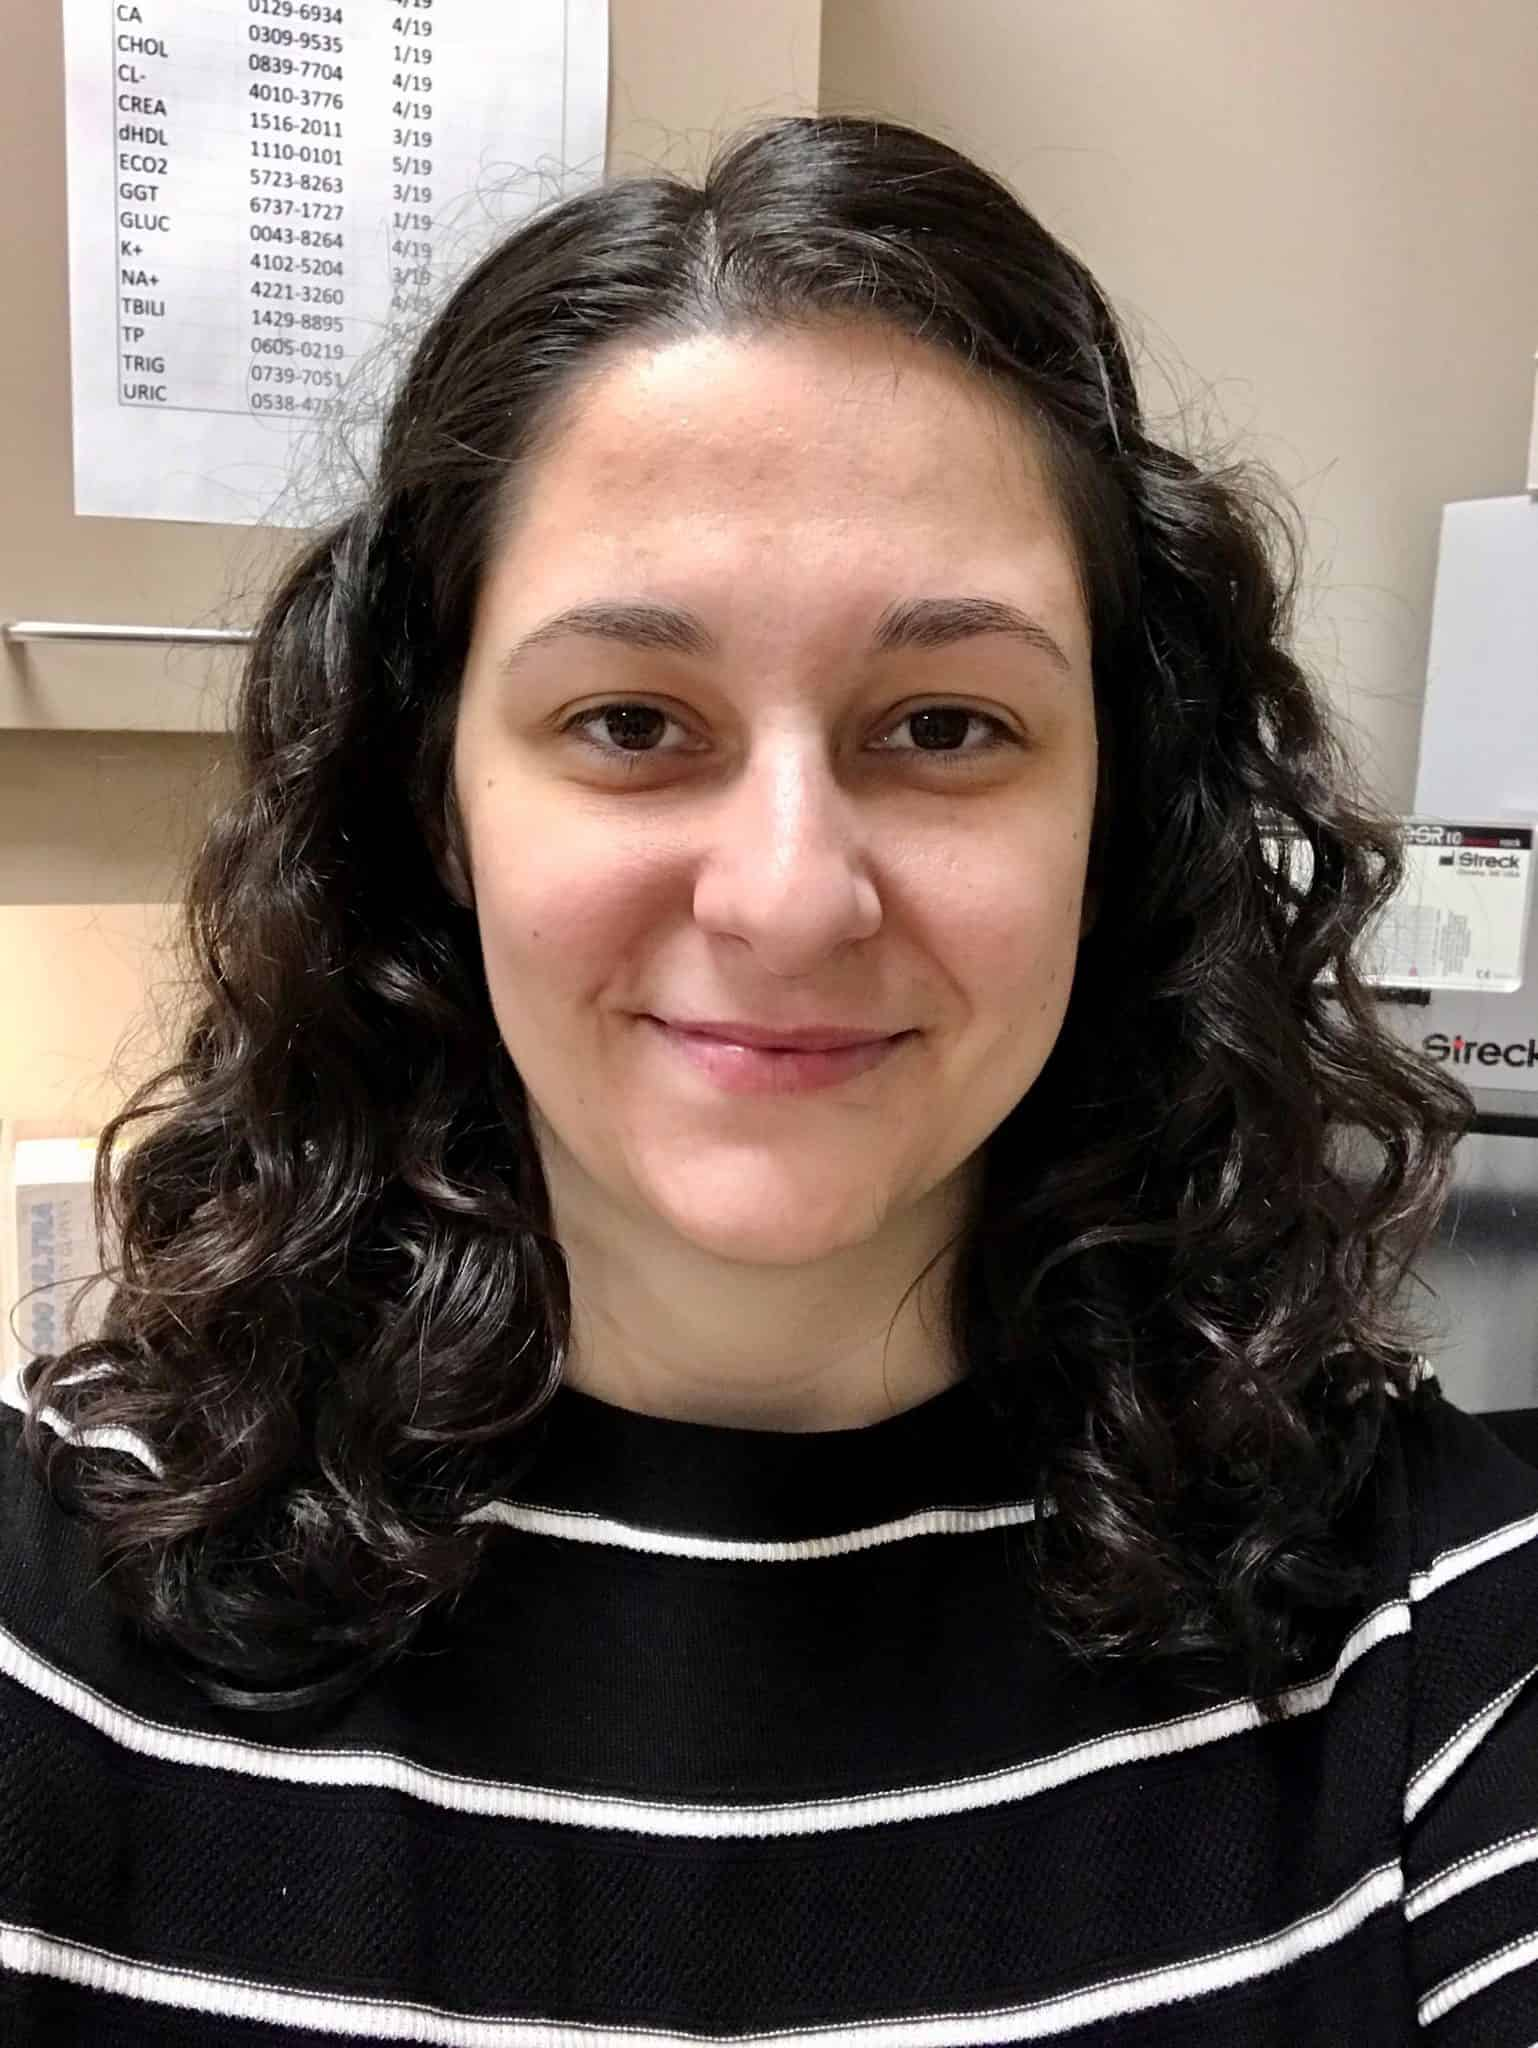 Misty Schoolfield, a Medical Laboratory Sciences student in the College of Health Professions, received a national scholarship from the American Proficiency Institute.